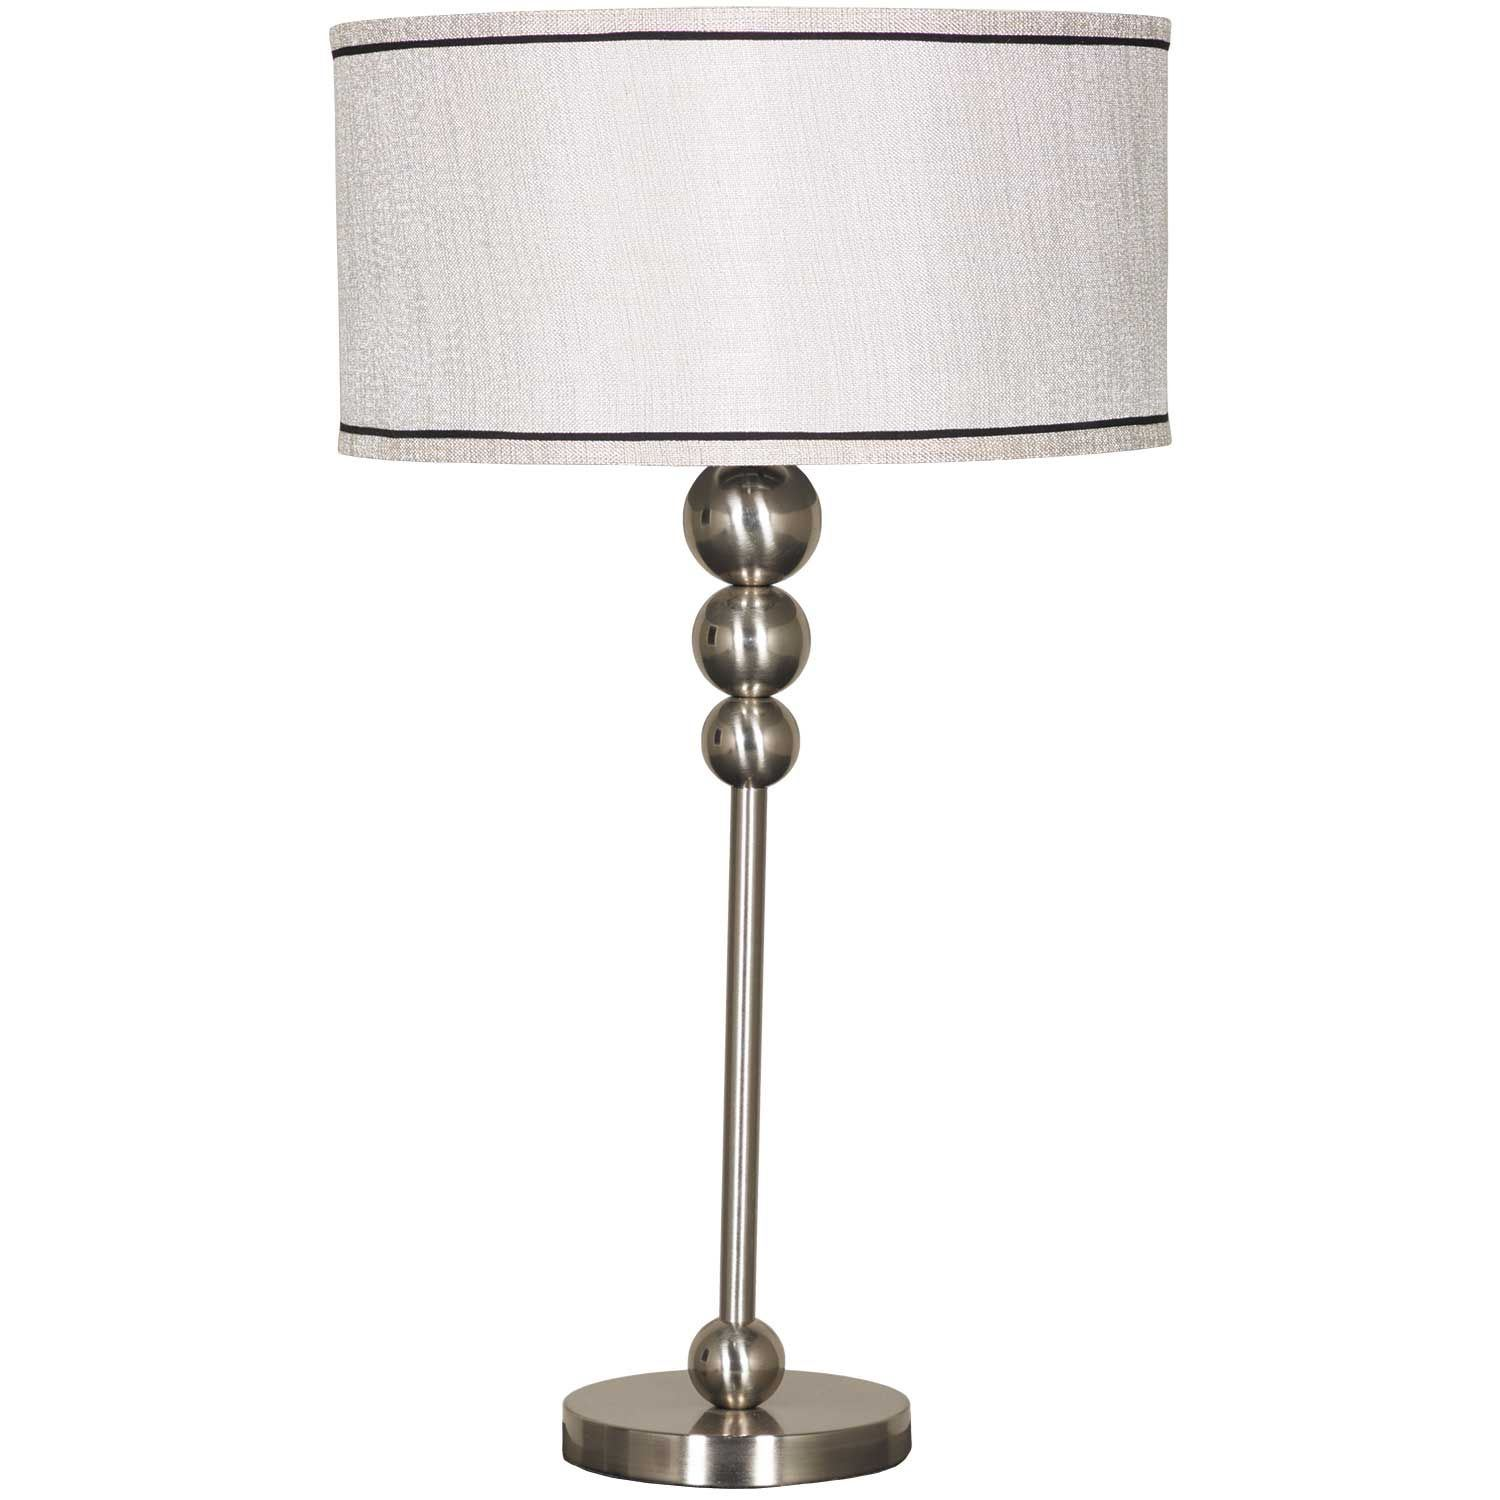 Trends of Table Lamps 3 Way Switch Trend 2020 @house2homegoods.net